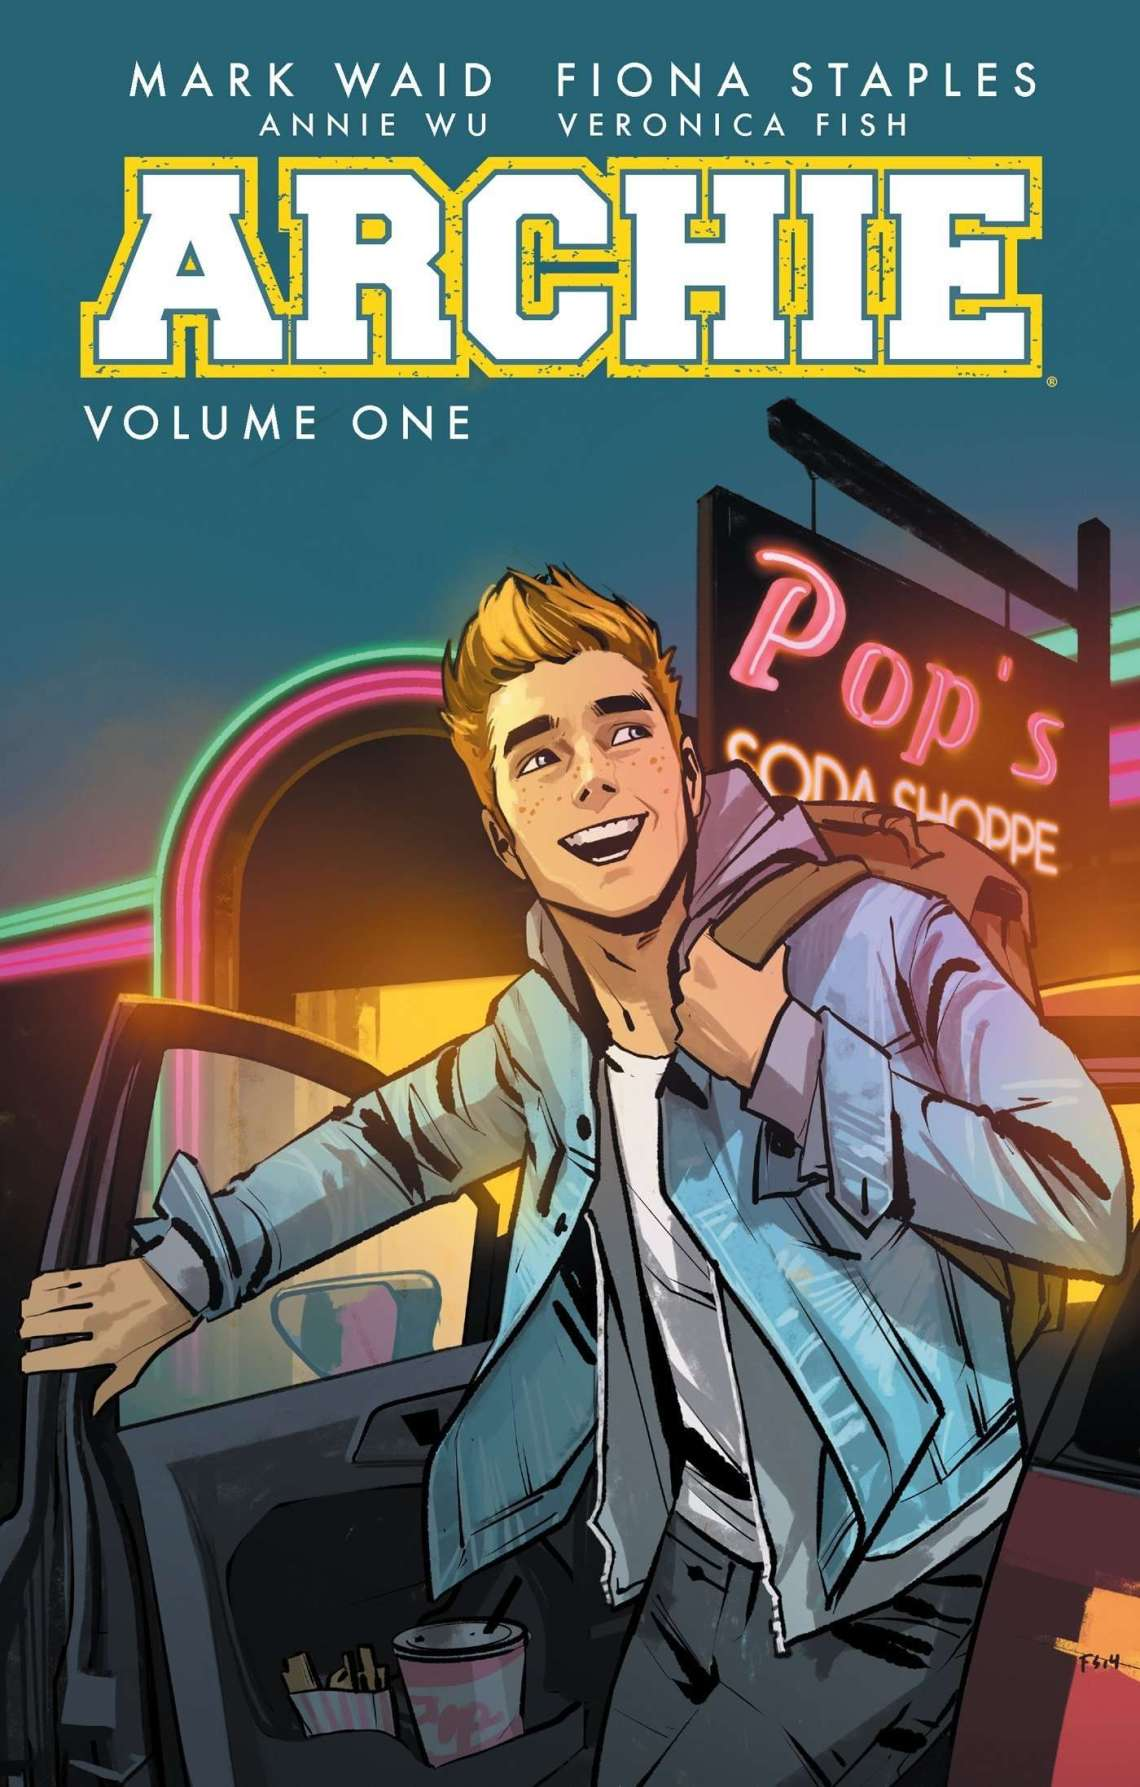 Cover Book review Archie comic volume 1 by Mark Waid